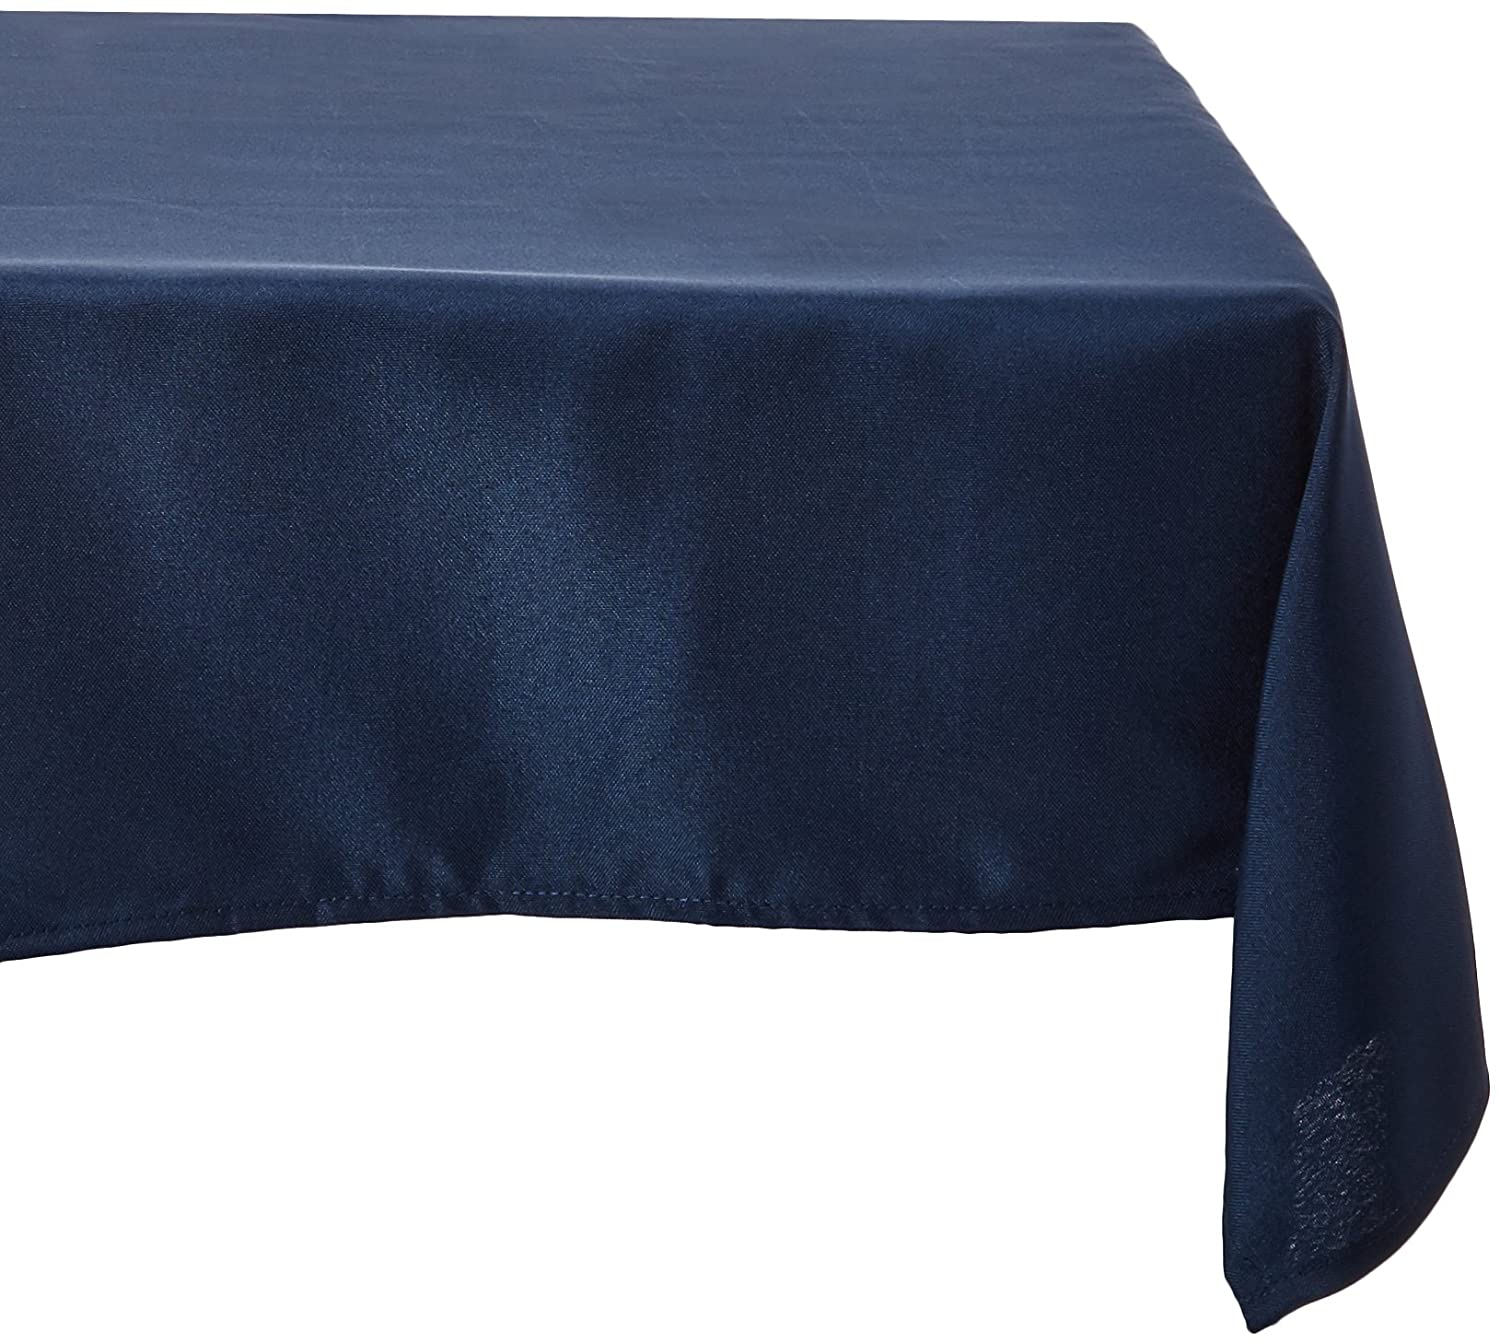 Vinyl Table Covers Canada Dining Room Protectors